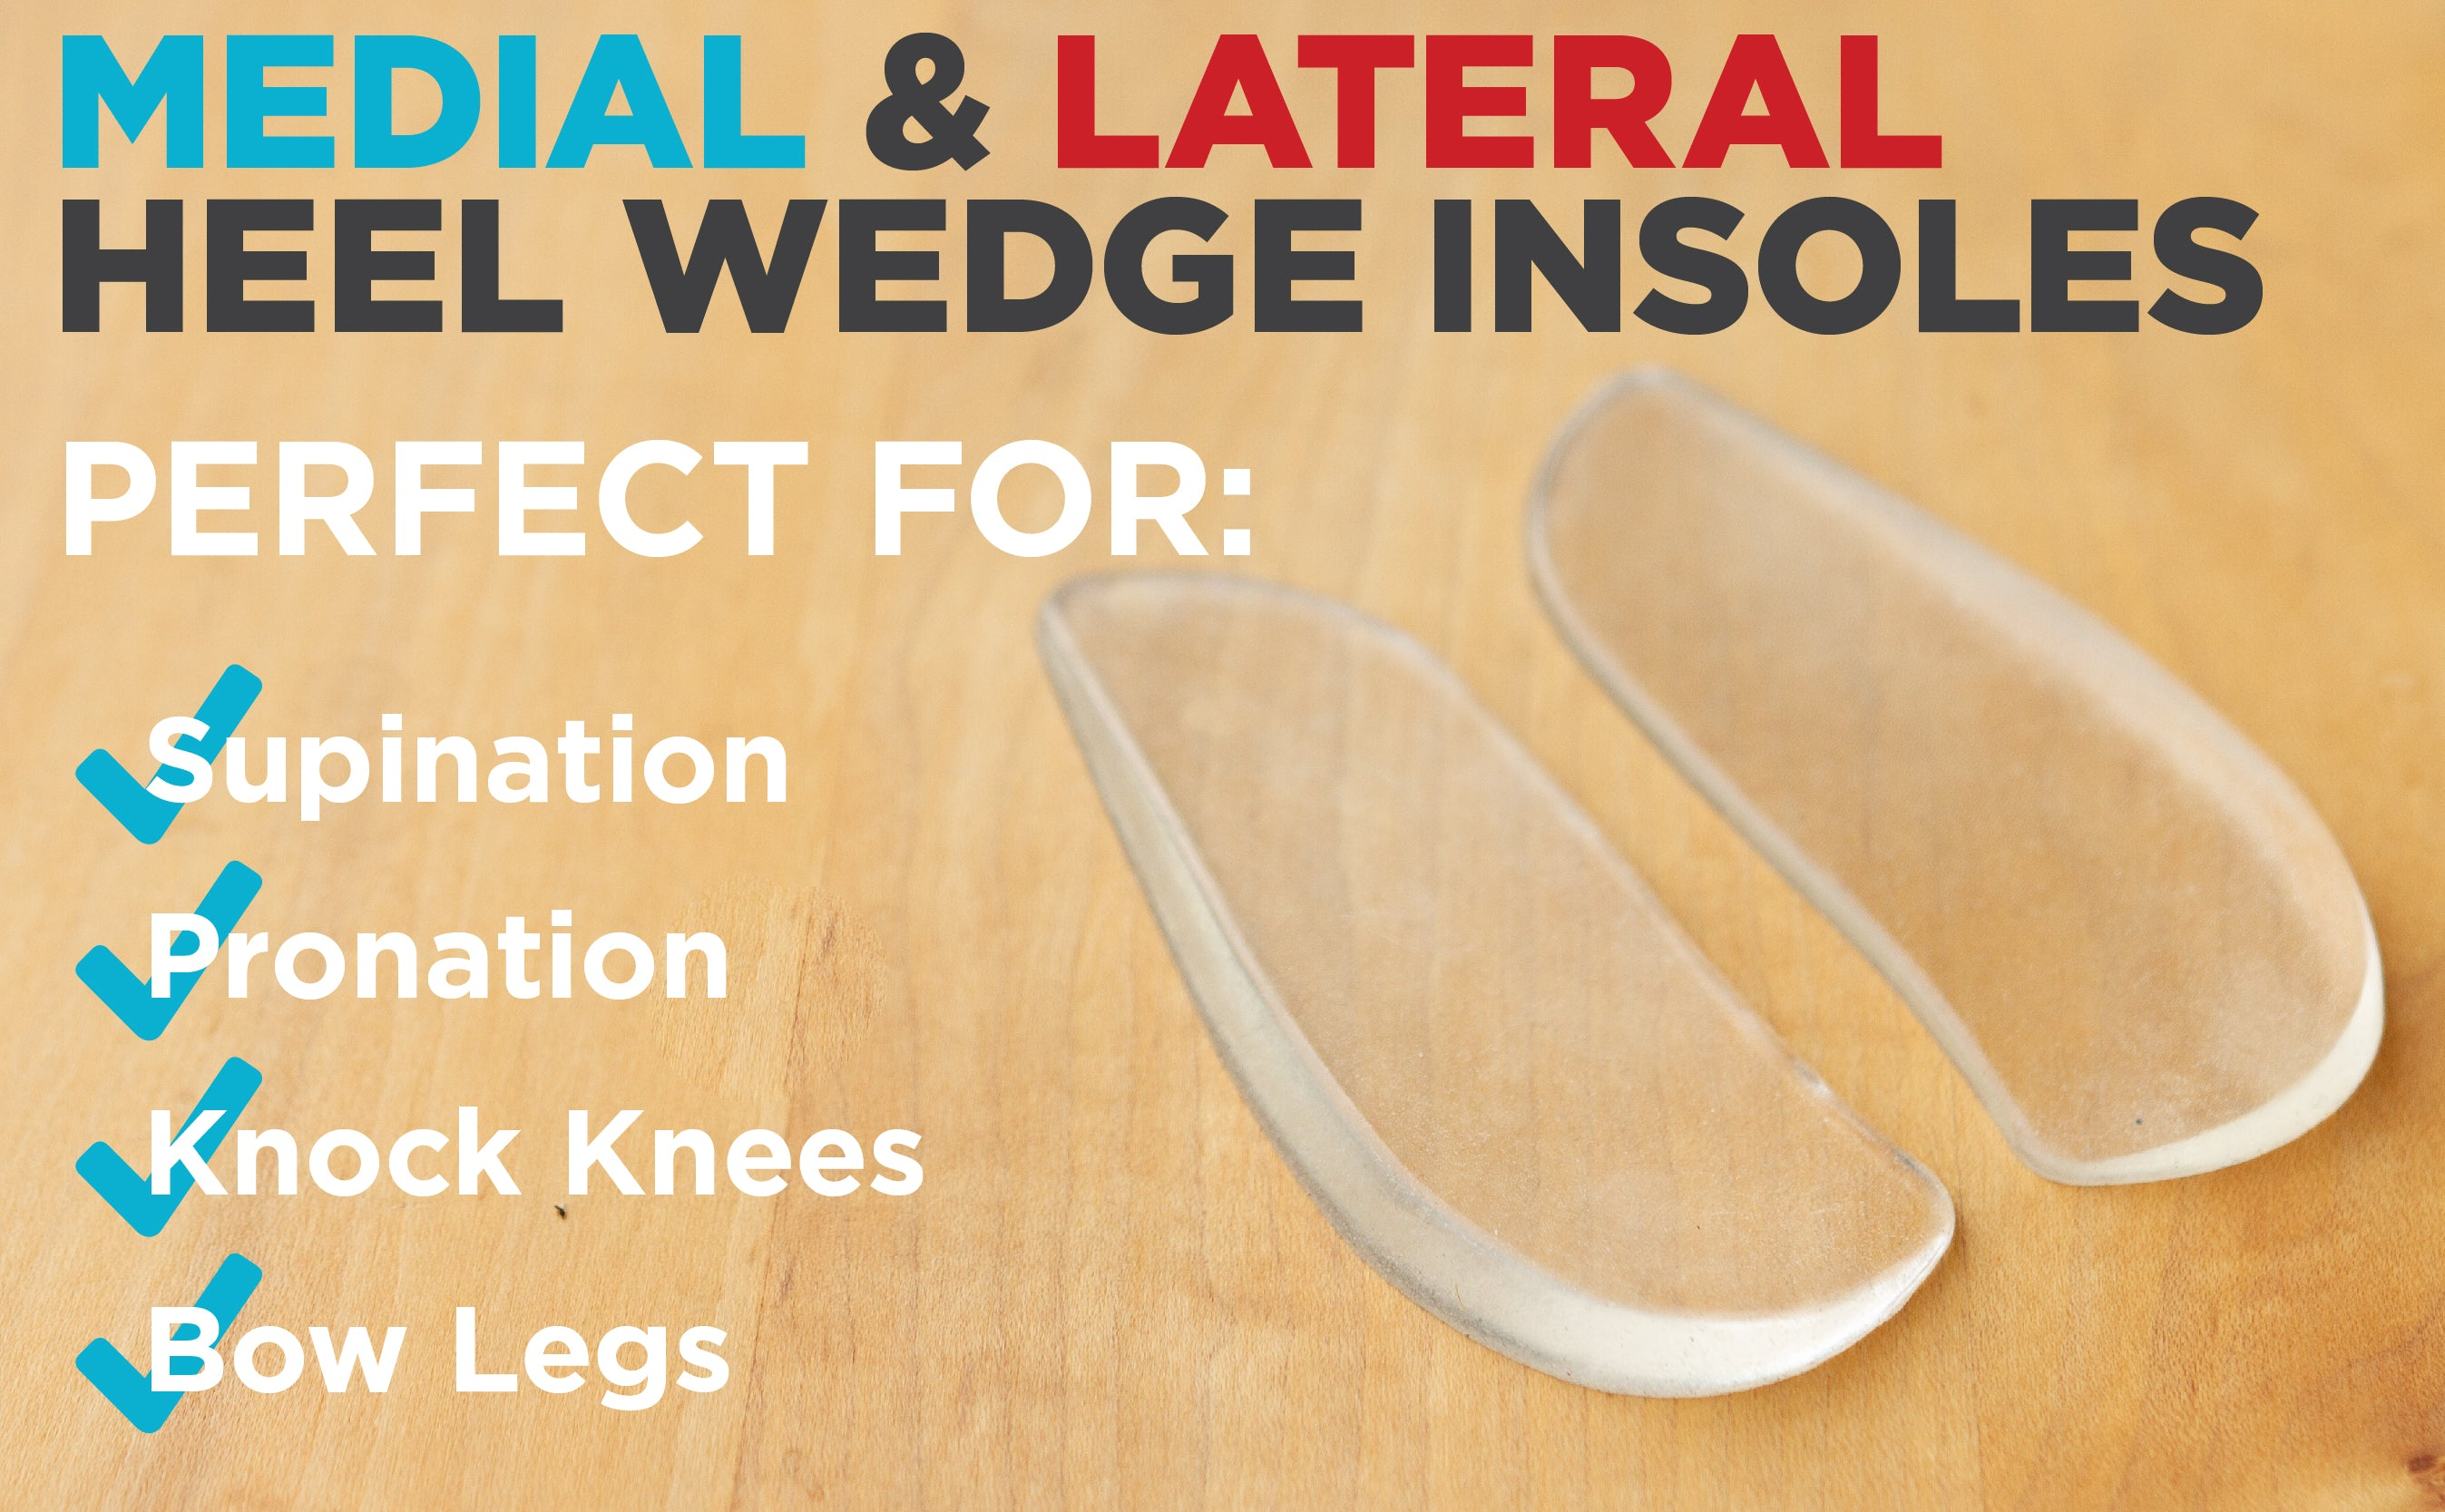 braceability medial and lateral shoe inserts are perfect for correcting supination and pronation